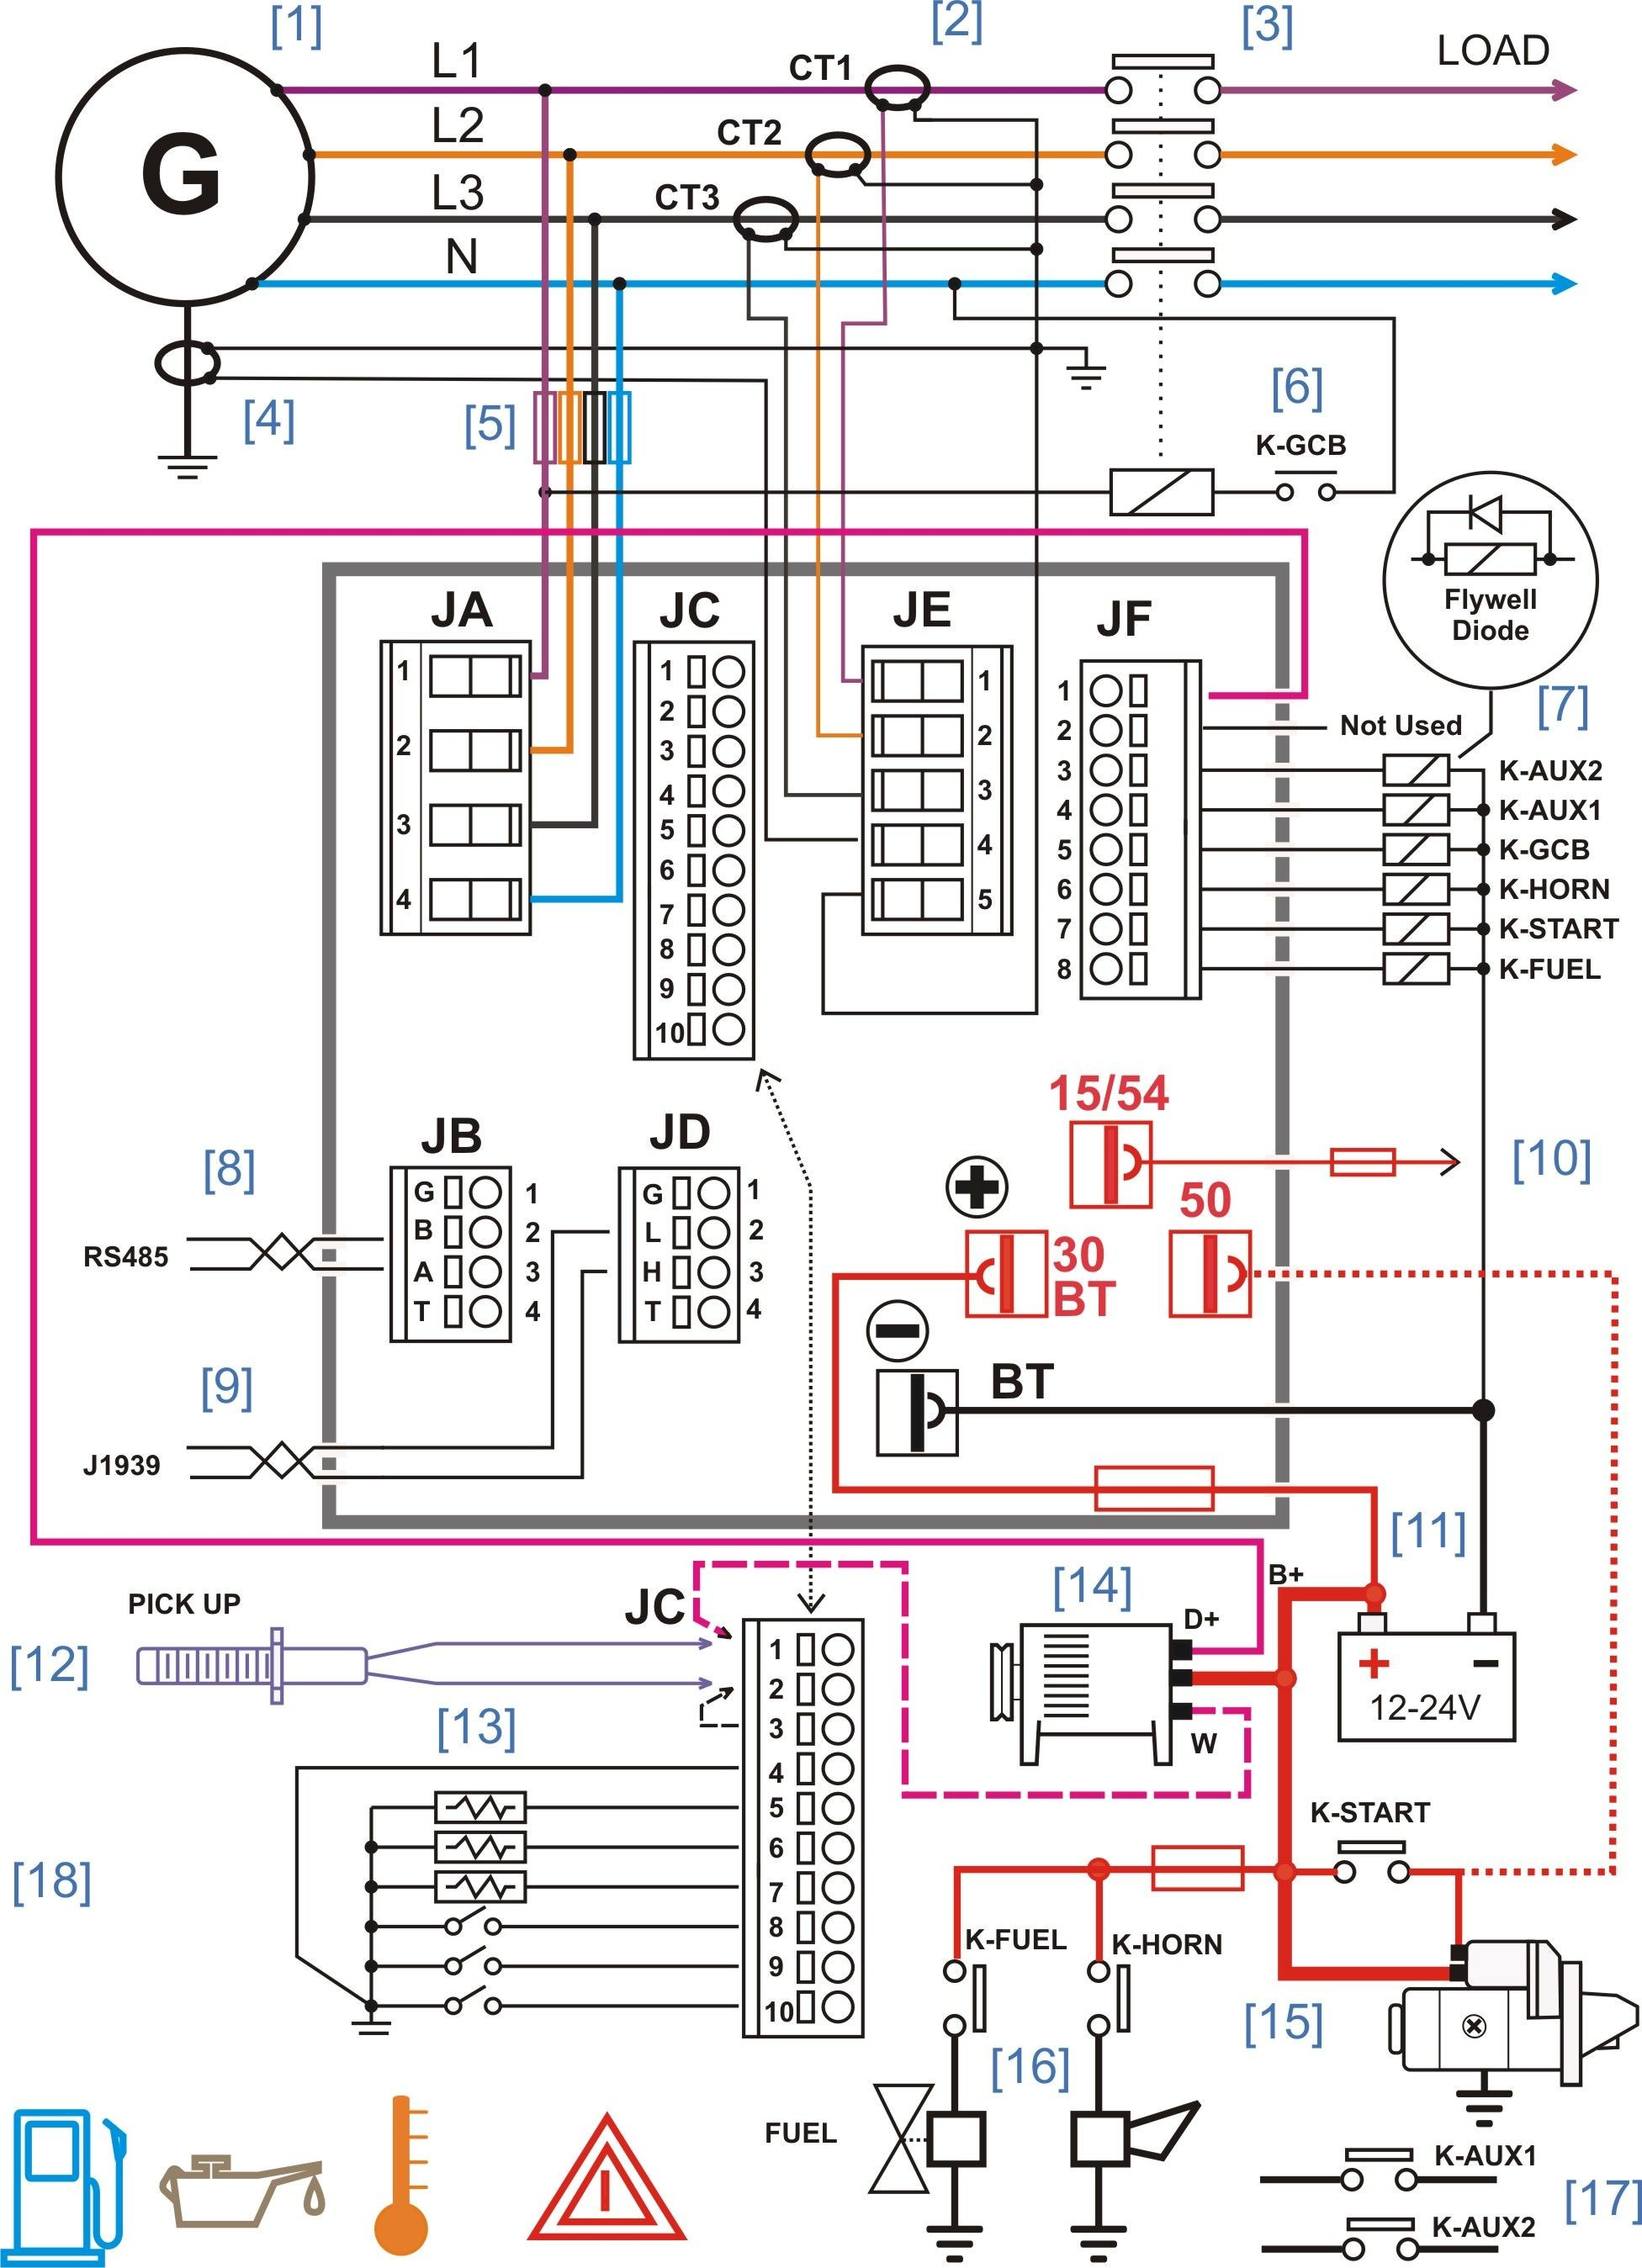 Break Away Systems Wiring Diagram Kymco Super 8 125 Circuit For Agility 50 Diesel Generator Control Panel Of